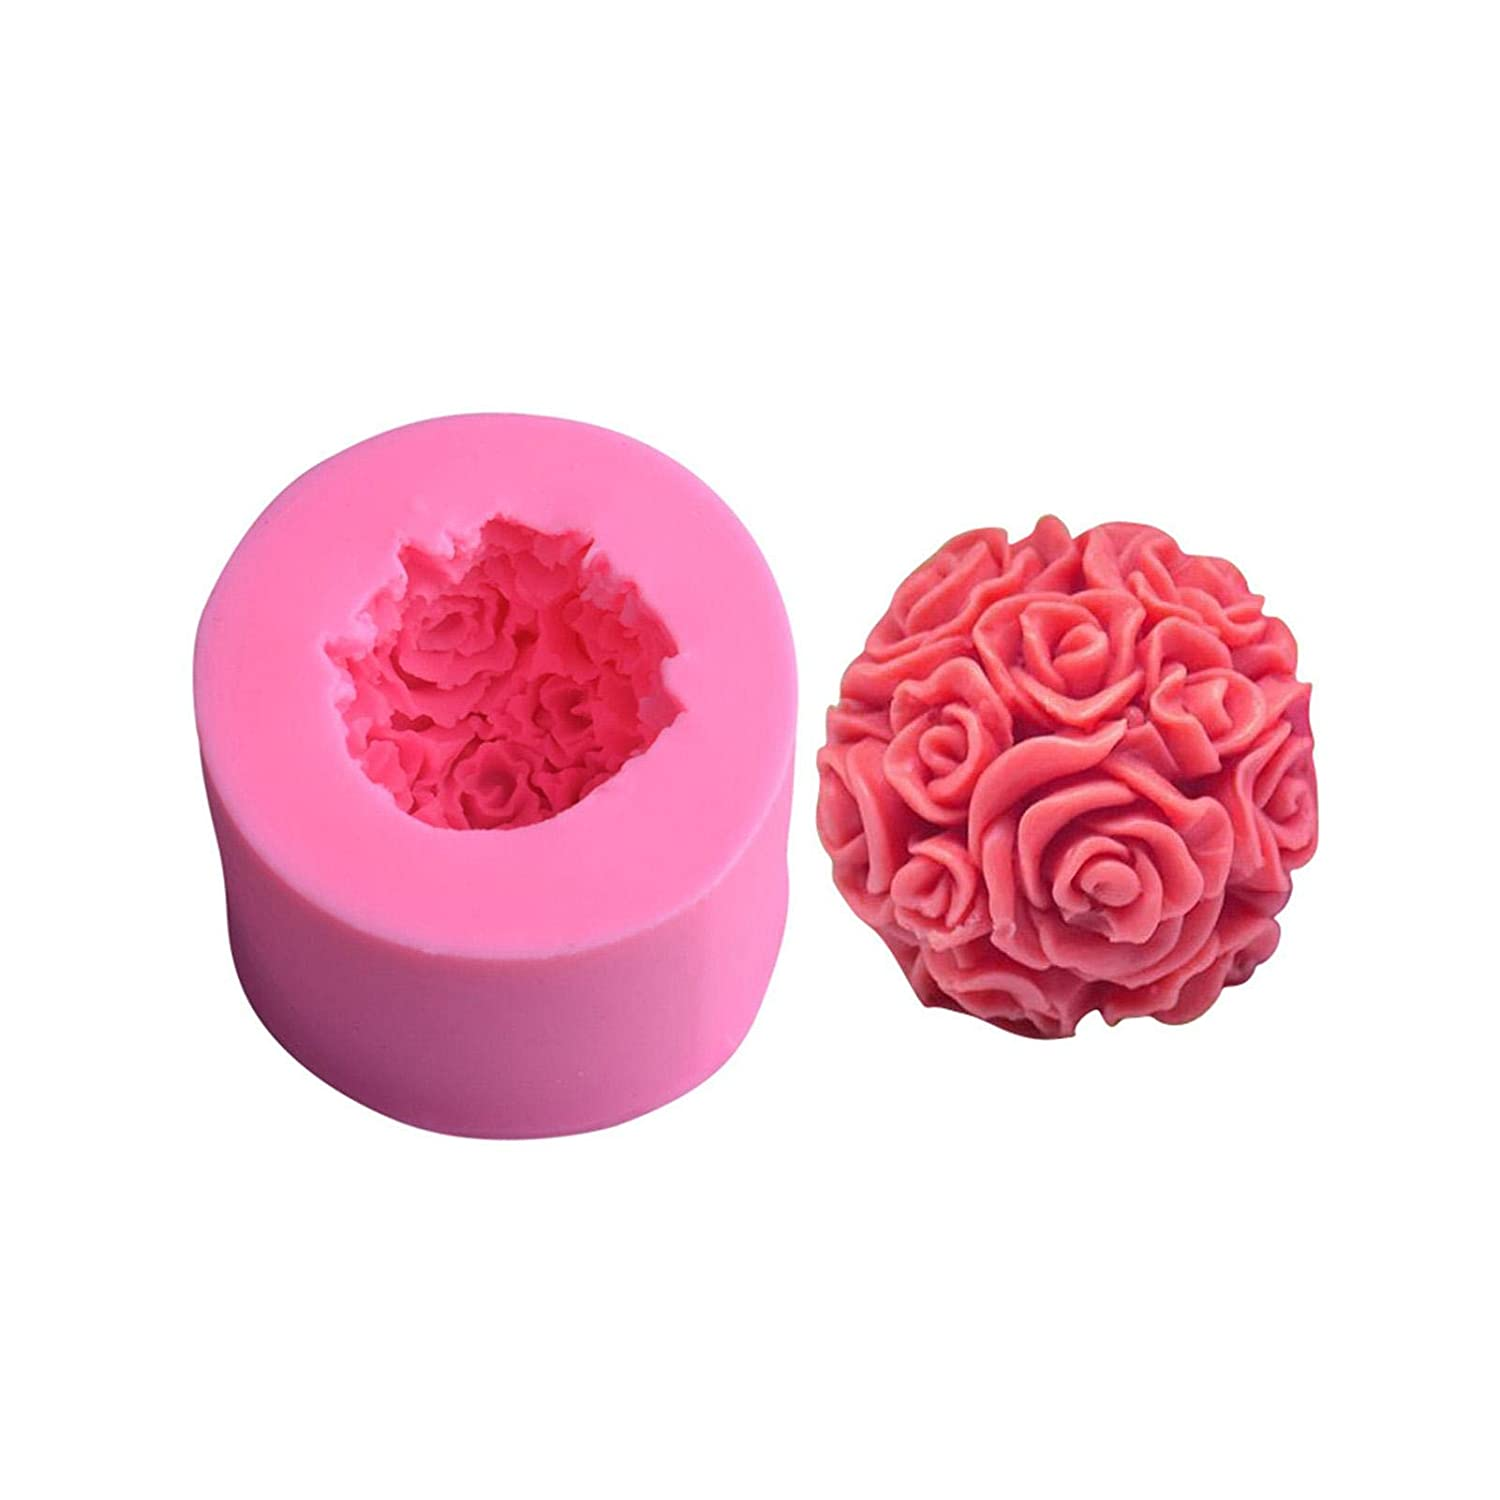 3D Candle Molds Rose Flower Owl Shape Art Craft Silicone Mold Kit Candle Wicks and Centering Device for DIY Homemade Beeswax Candle Making Supplies, Soaps, Lotion Bars etc